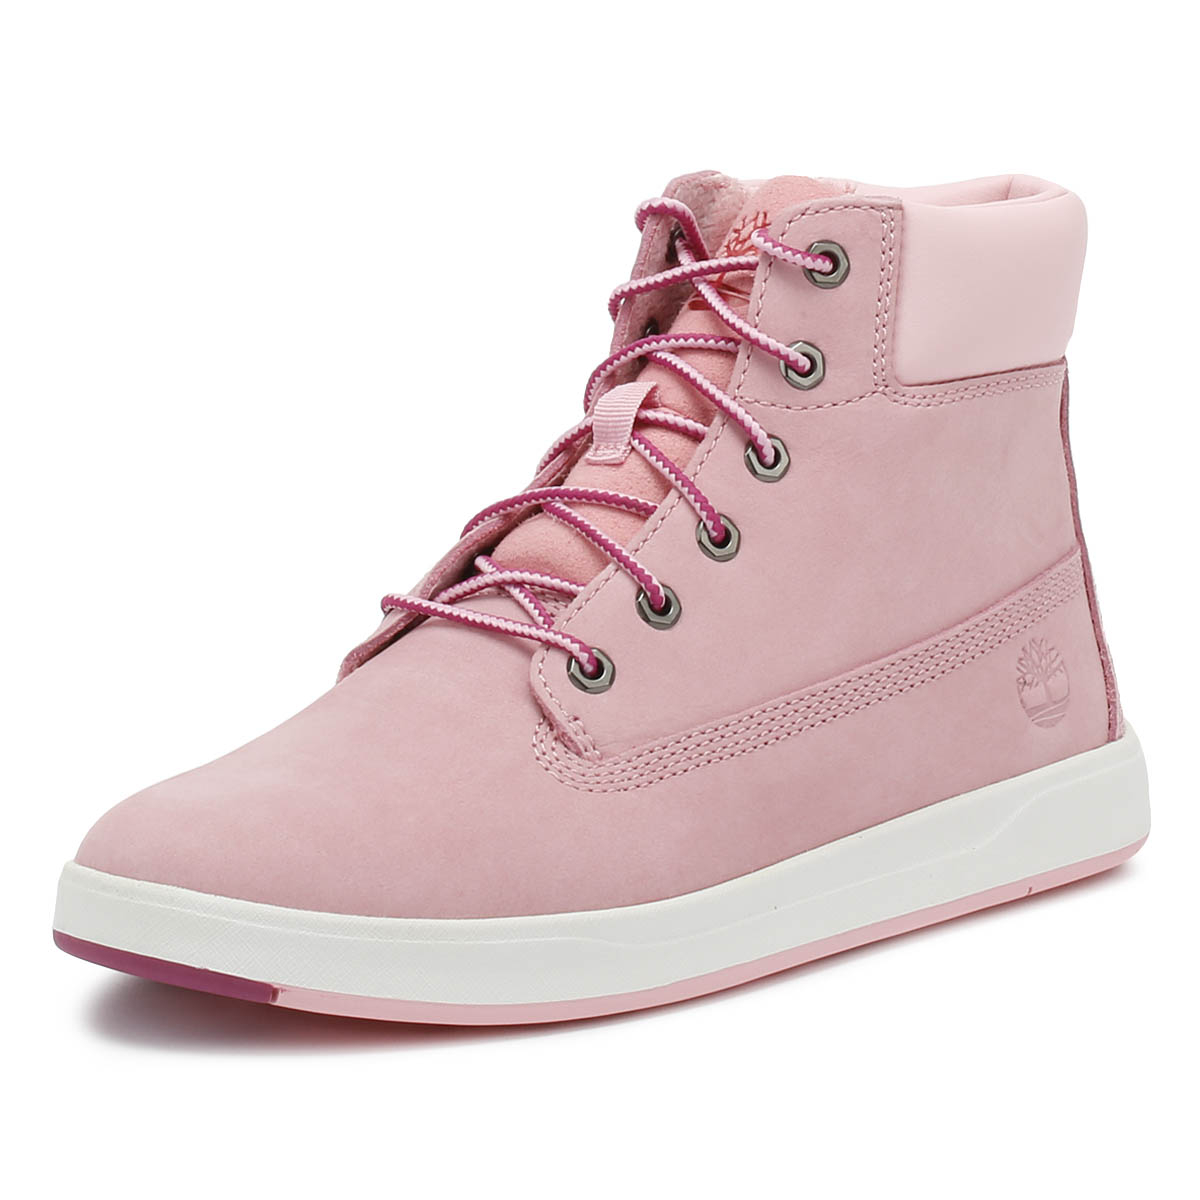 Details zu Timberland Junior 6 Inch Boots Pink Davis Square Leather Kids Winter Shoes